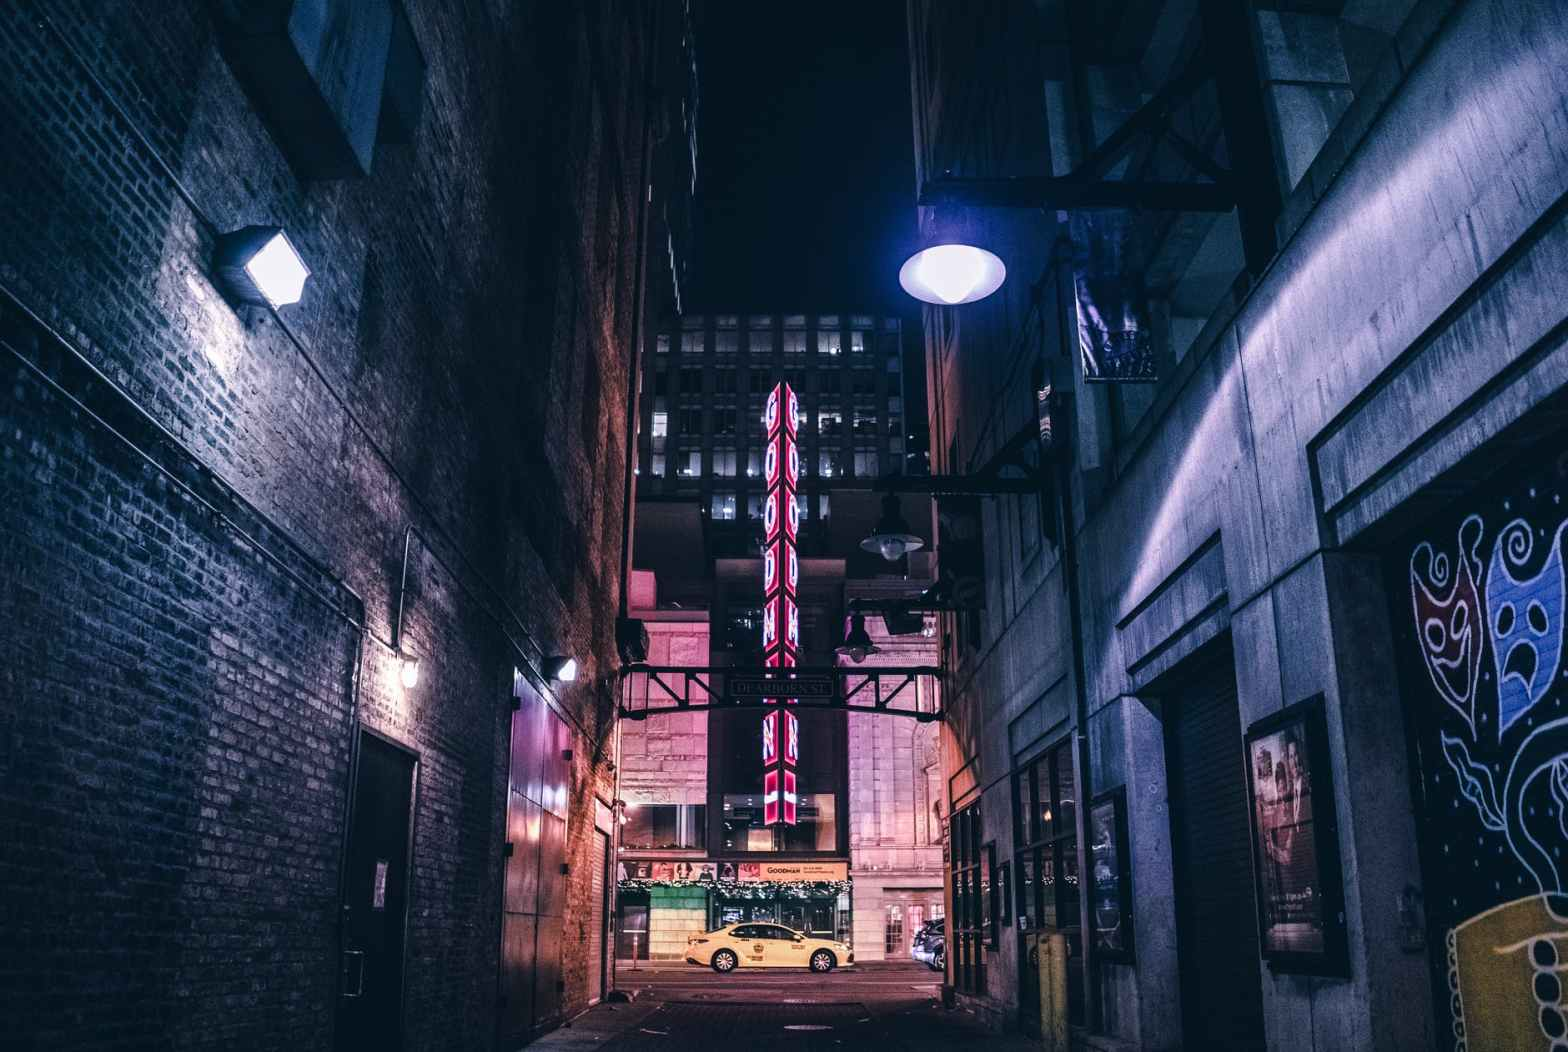 empty alley at night